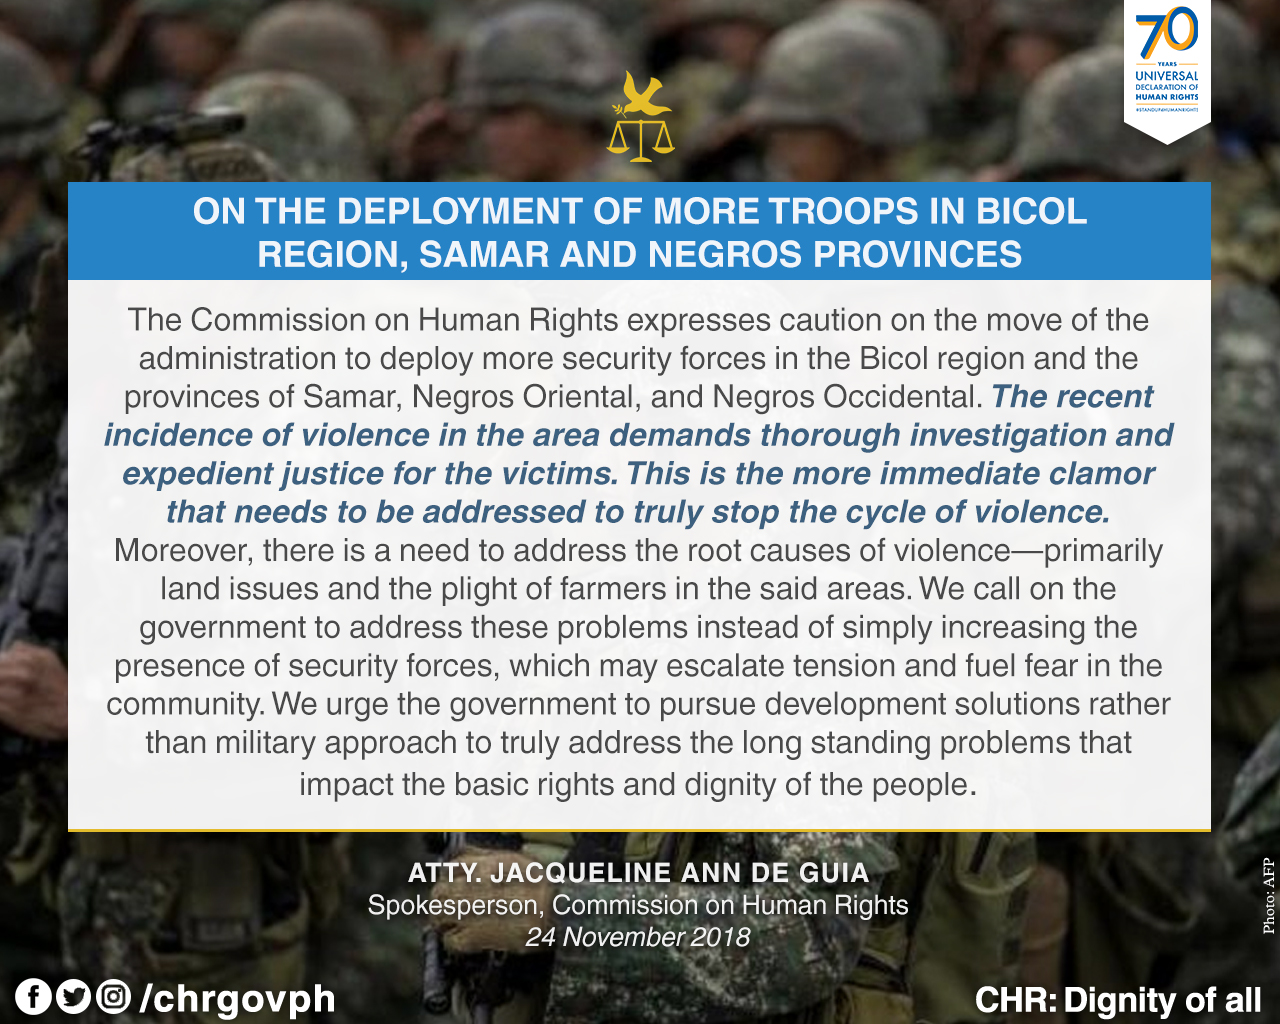 Statement of CHR spokesperson, Atty  Jacqueline de Guia, on